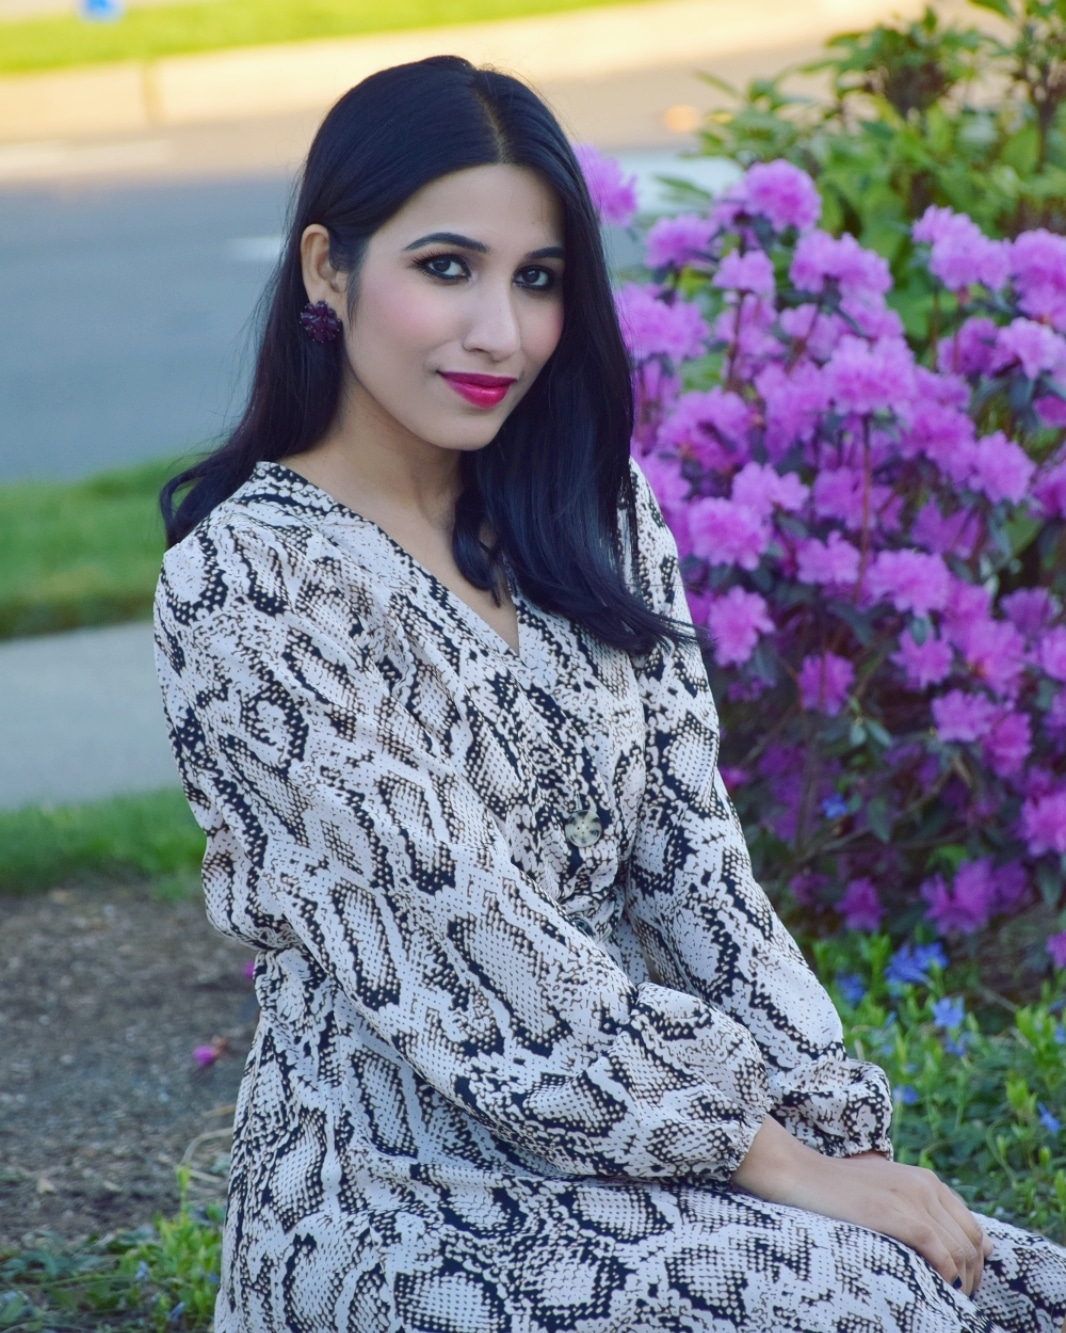 8 Cute And Stylish Dresses For Spring/Summer|Ft SHEIN